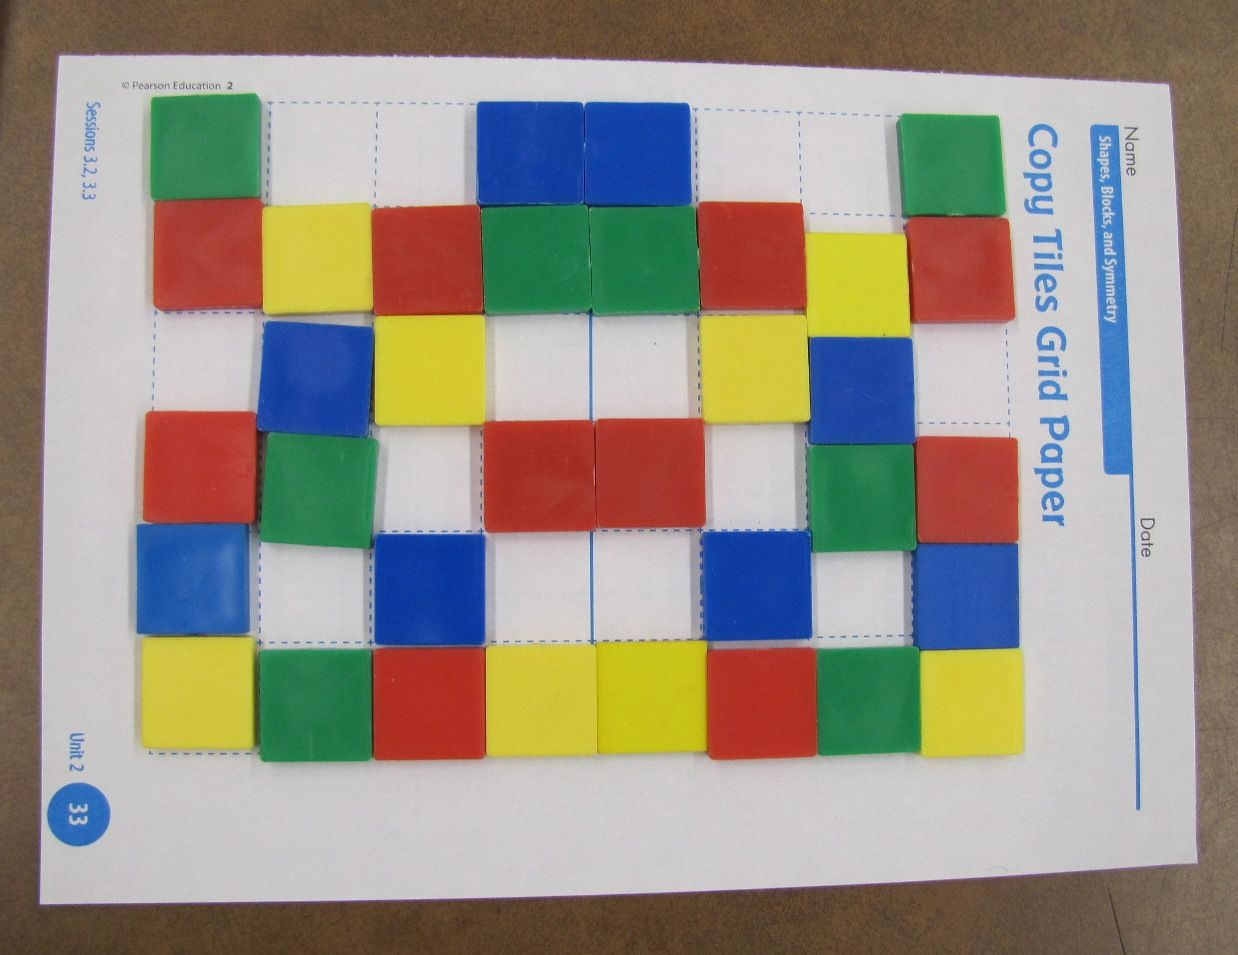 Students Play This Game Of Symmetry With A Partner One